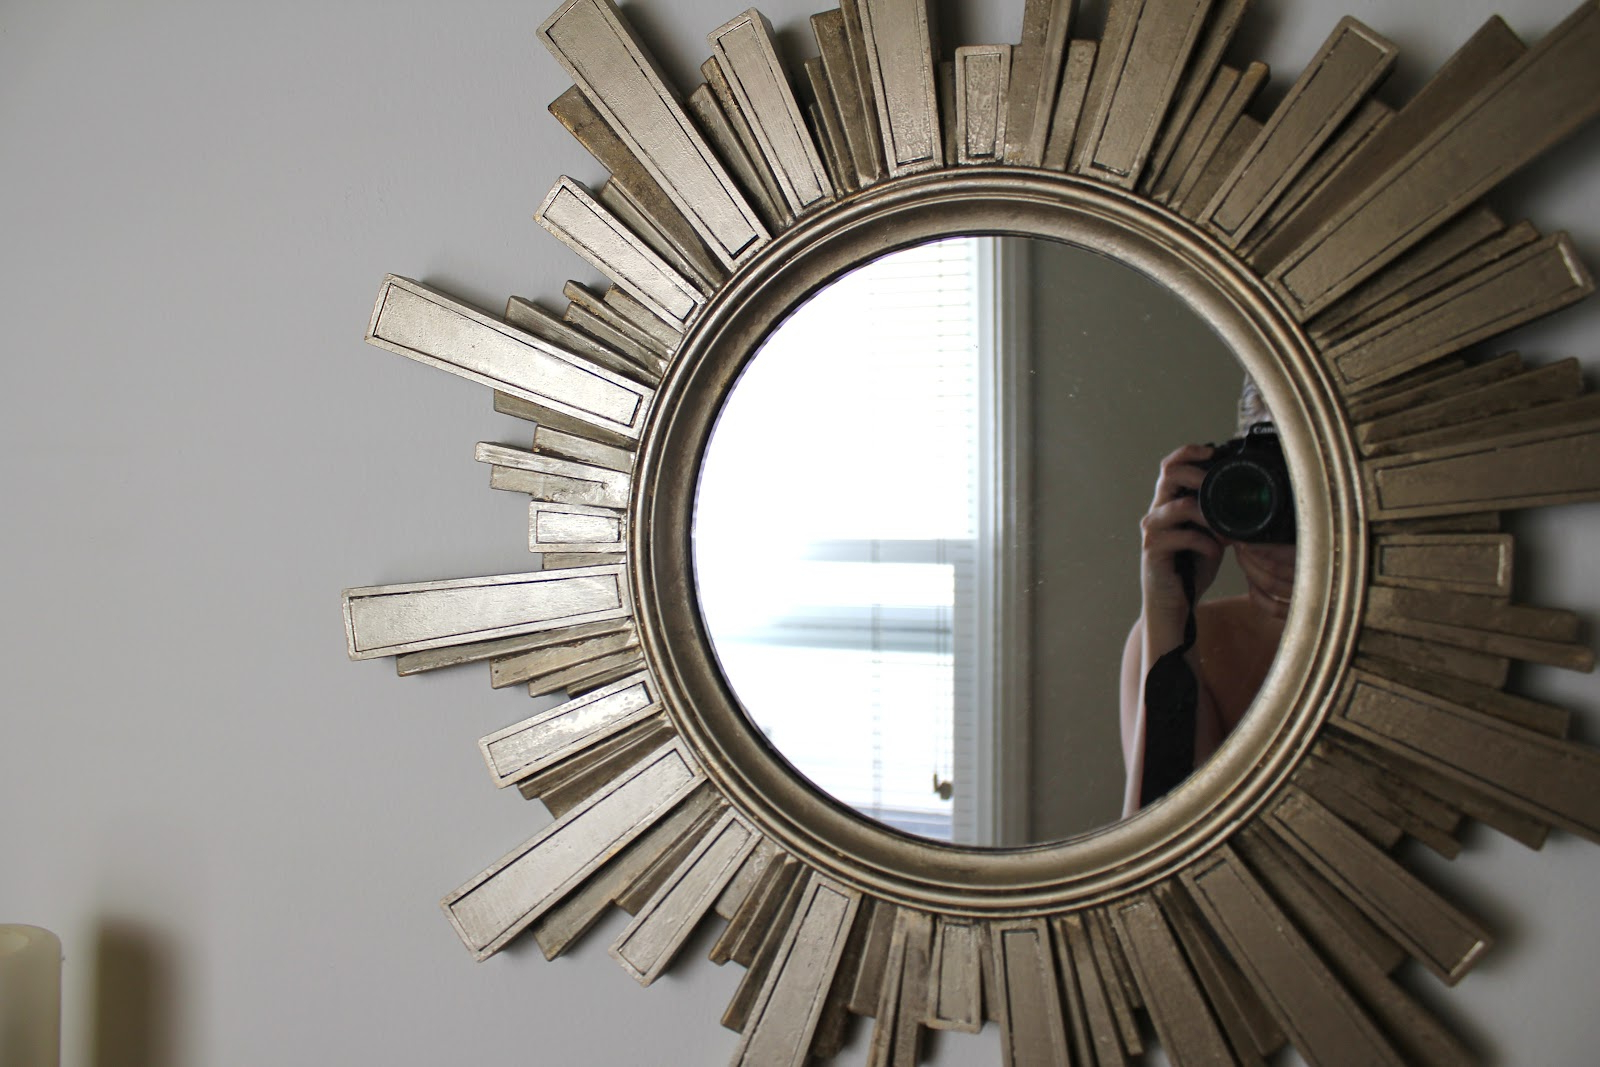 Bathroom Unique Wall Mirrors The Most Mirror Designs Framed Pertaining To Famous Unique Wall Mirrors (View 13 of 20)